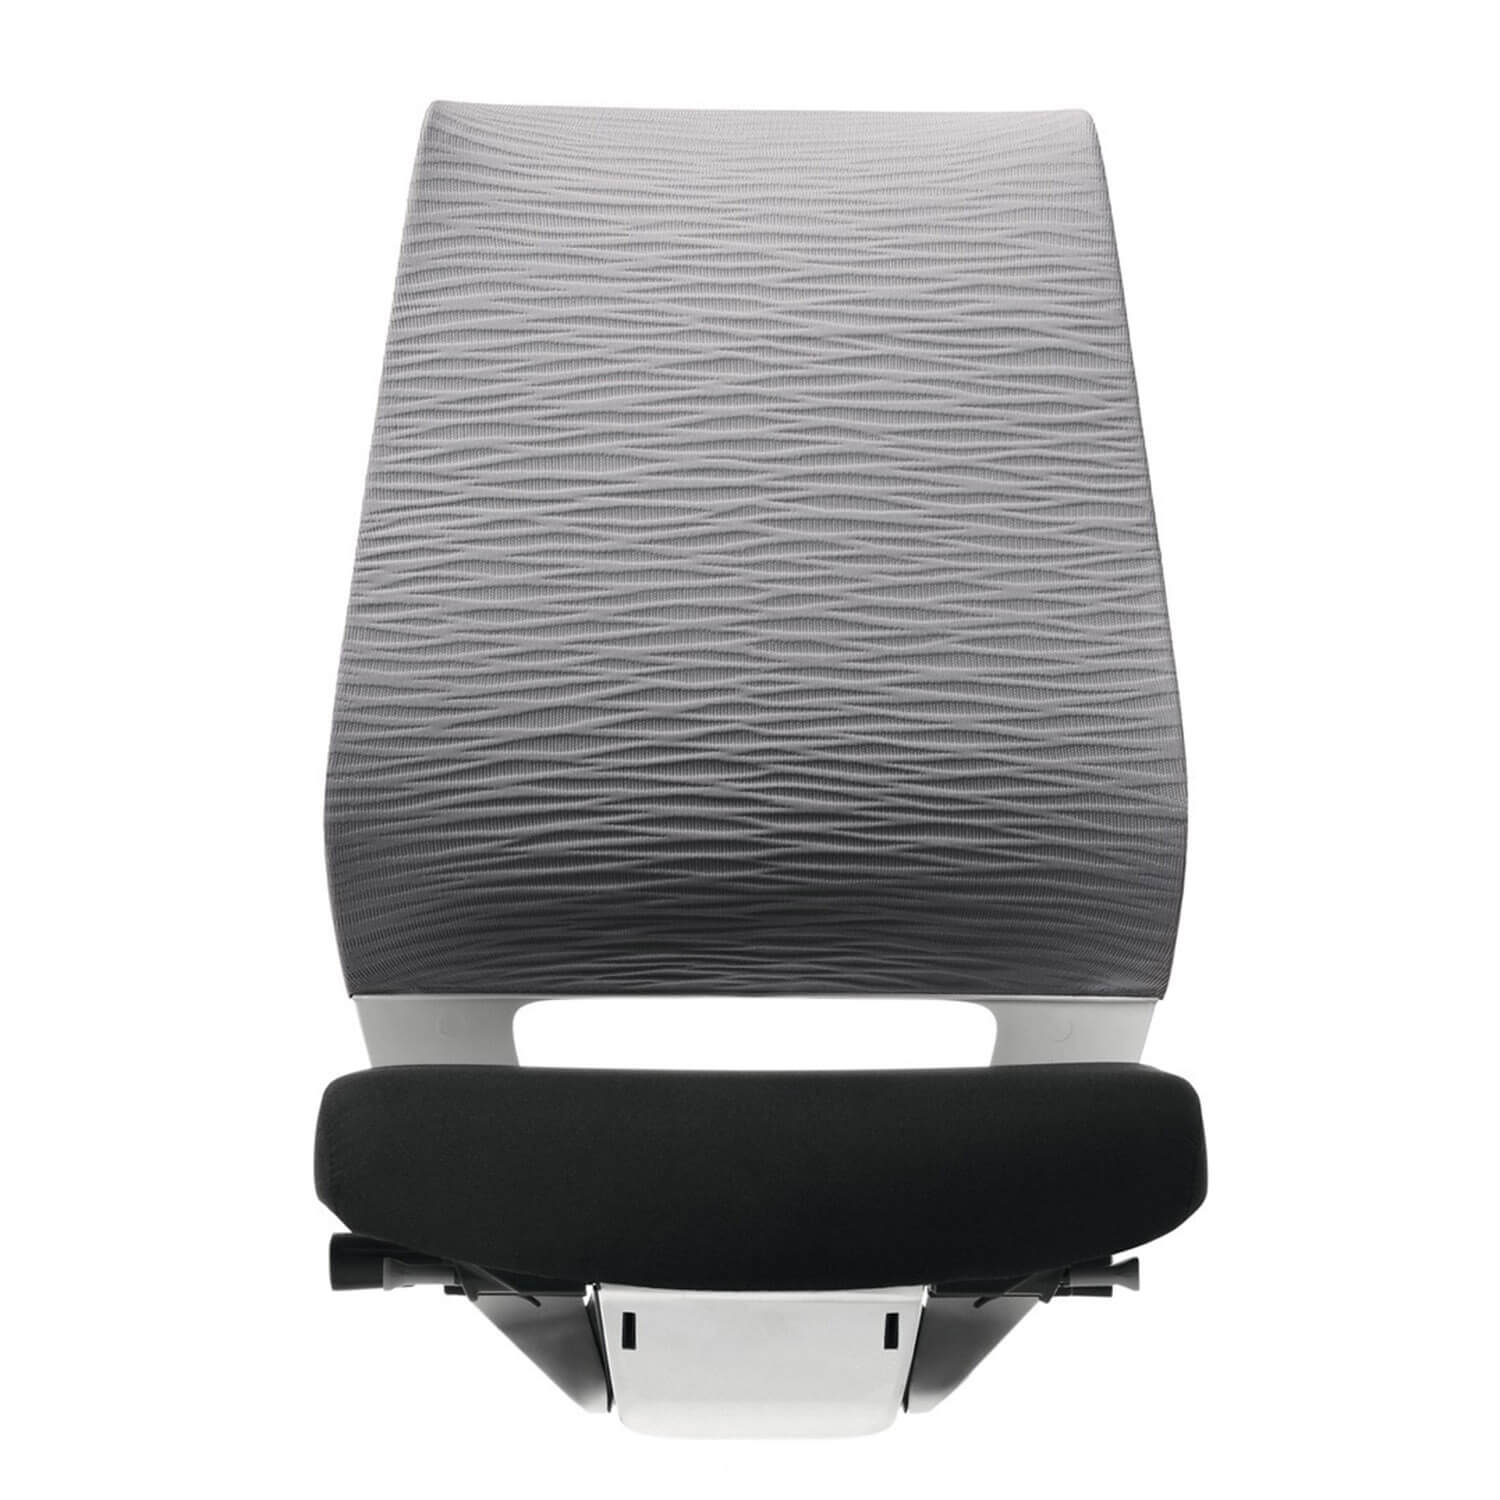 X-Code_Office Chairs9 - Copy